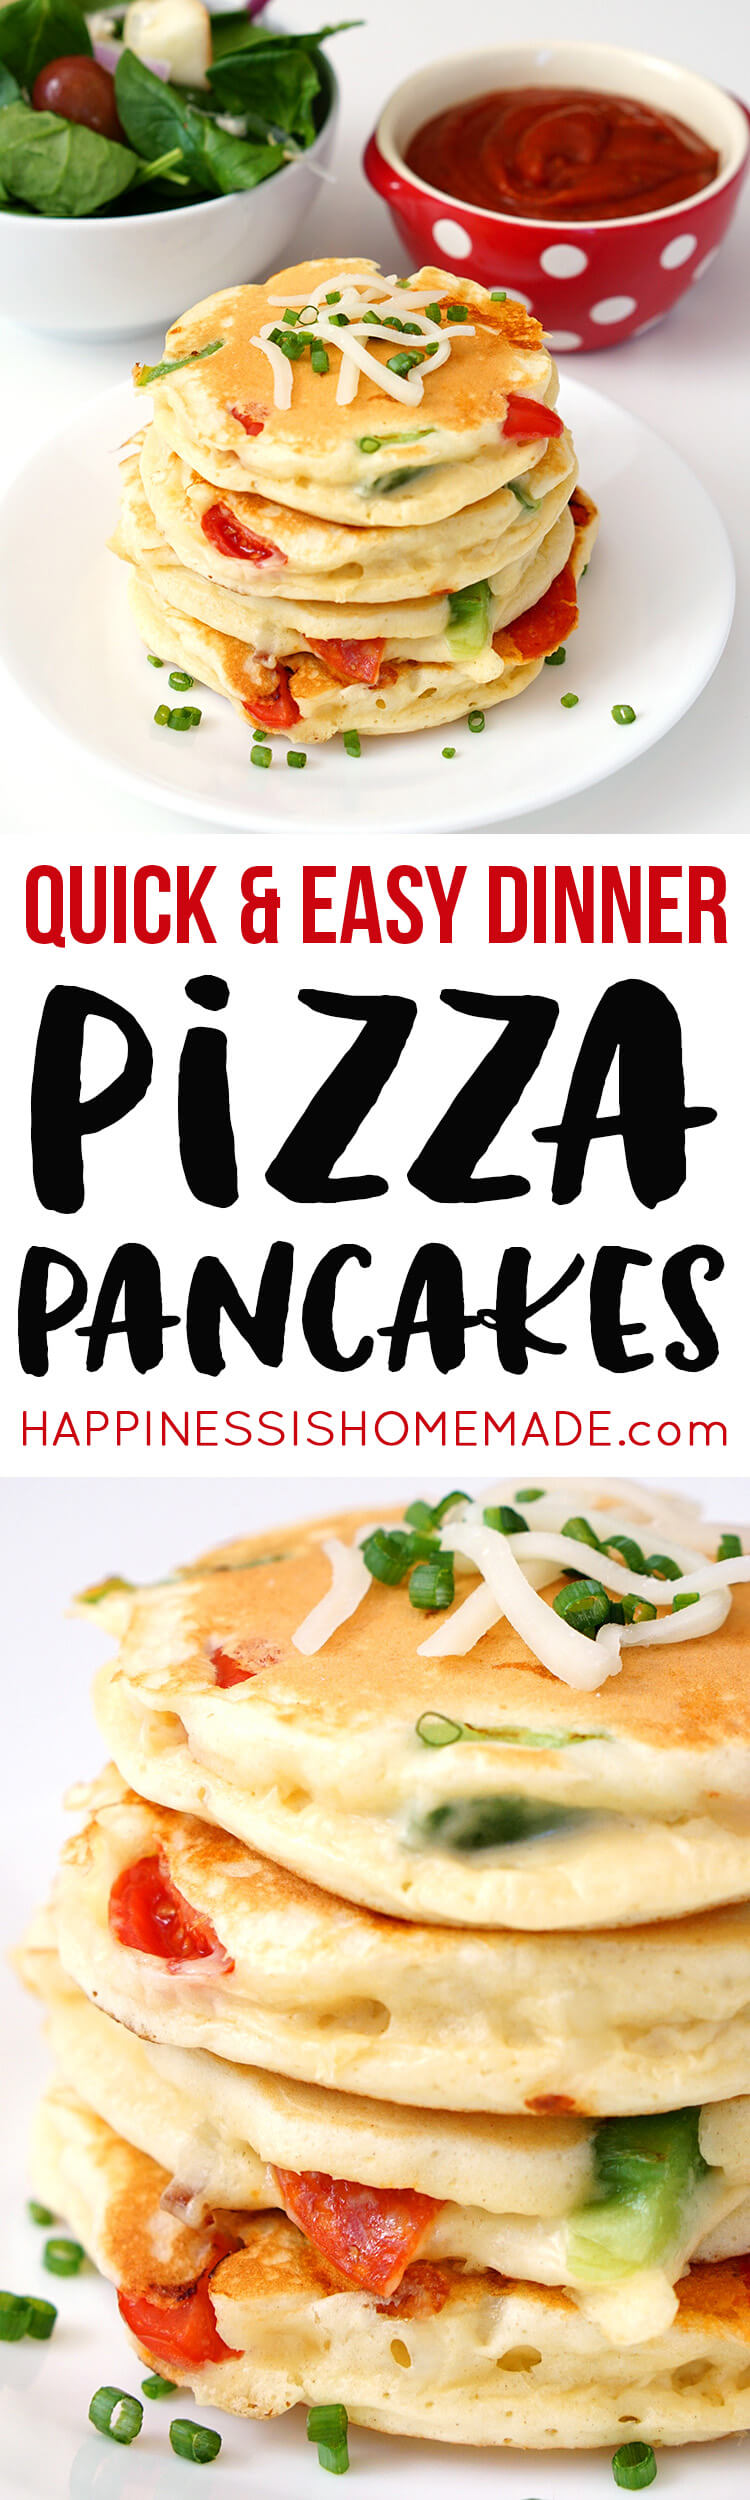 Pizza Pancakes Quick And Easy Dinner Recipe Idea